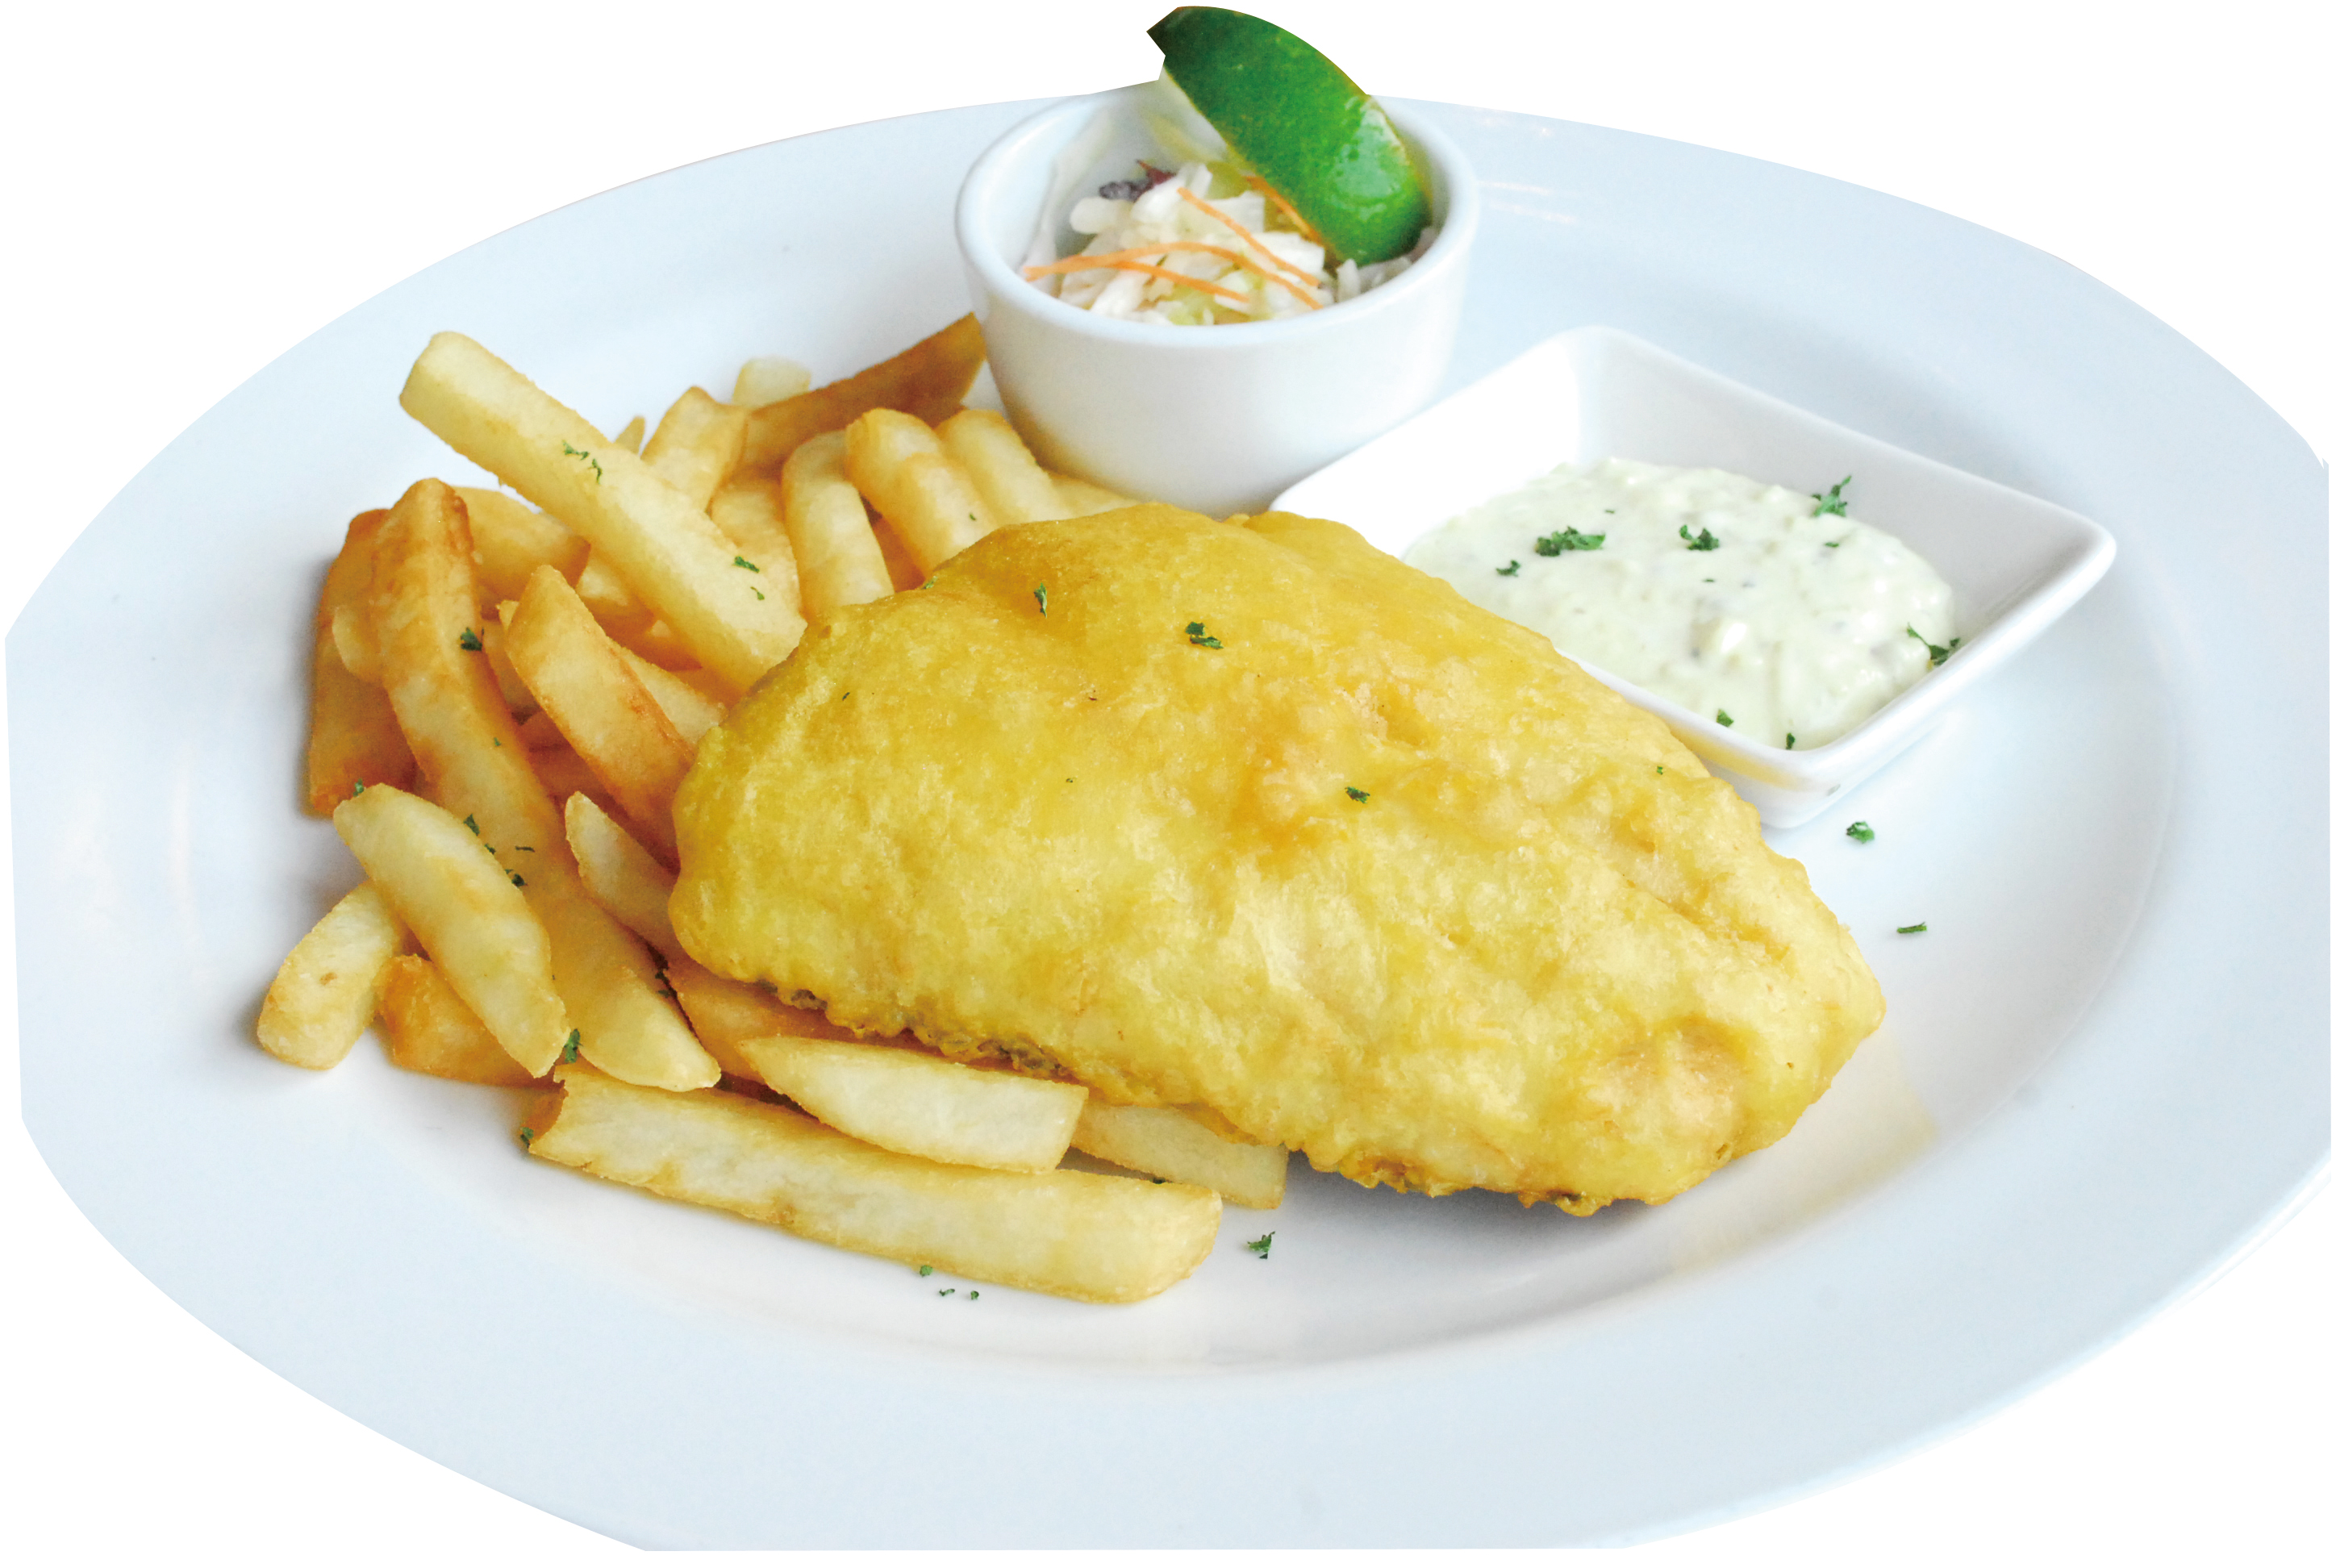 Terrace feb super saver promotion american club taipei for Terrace fish and chips